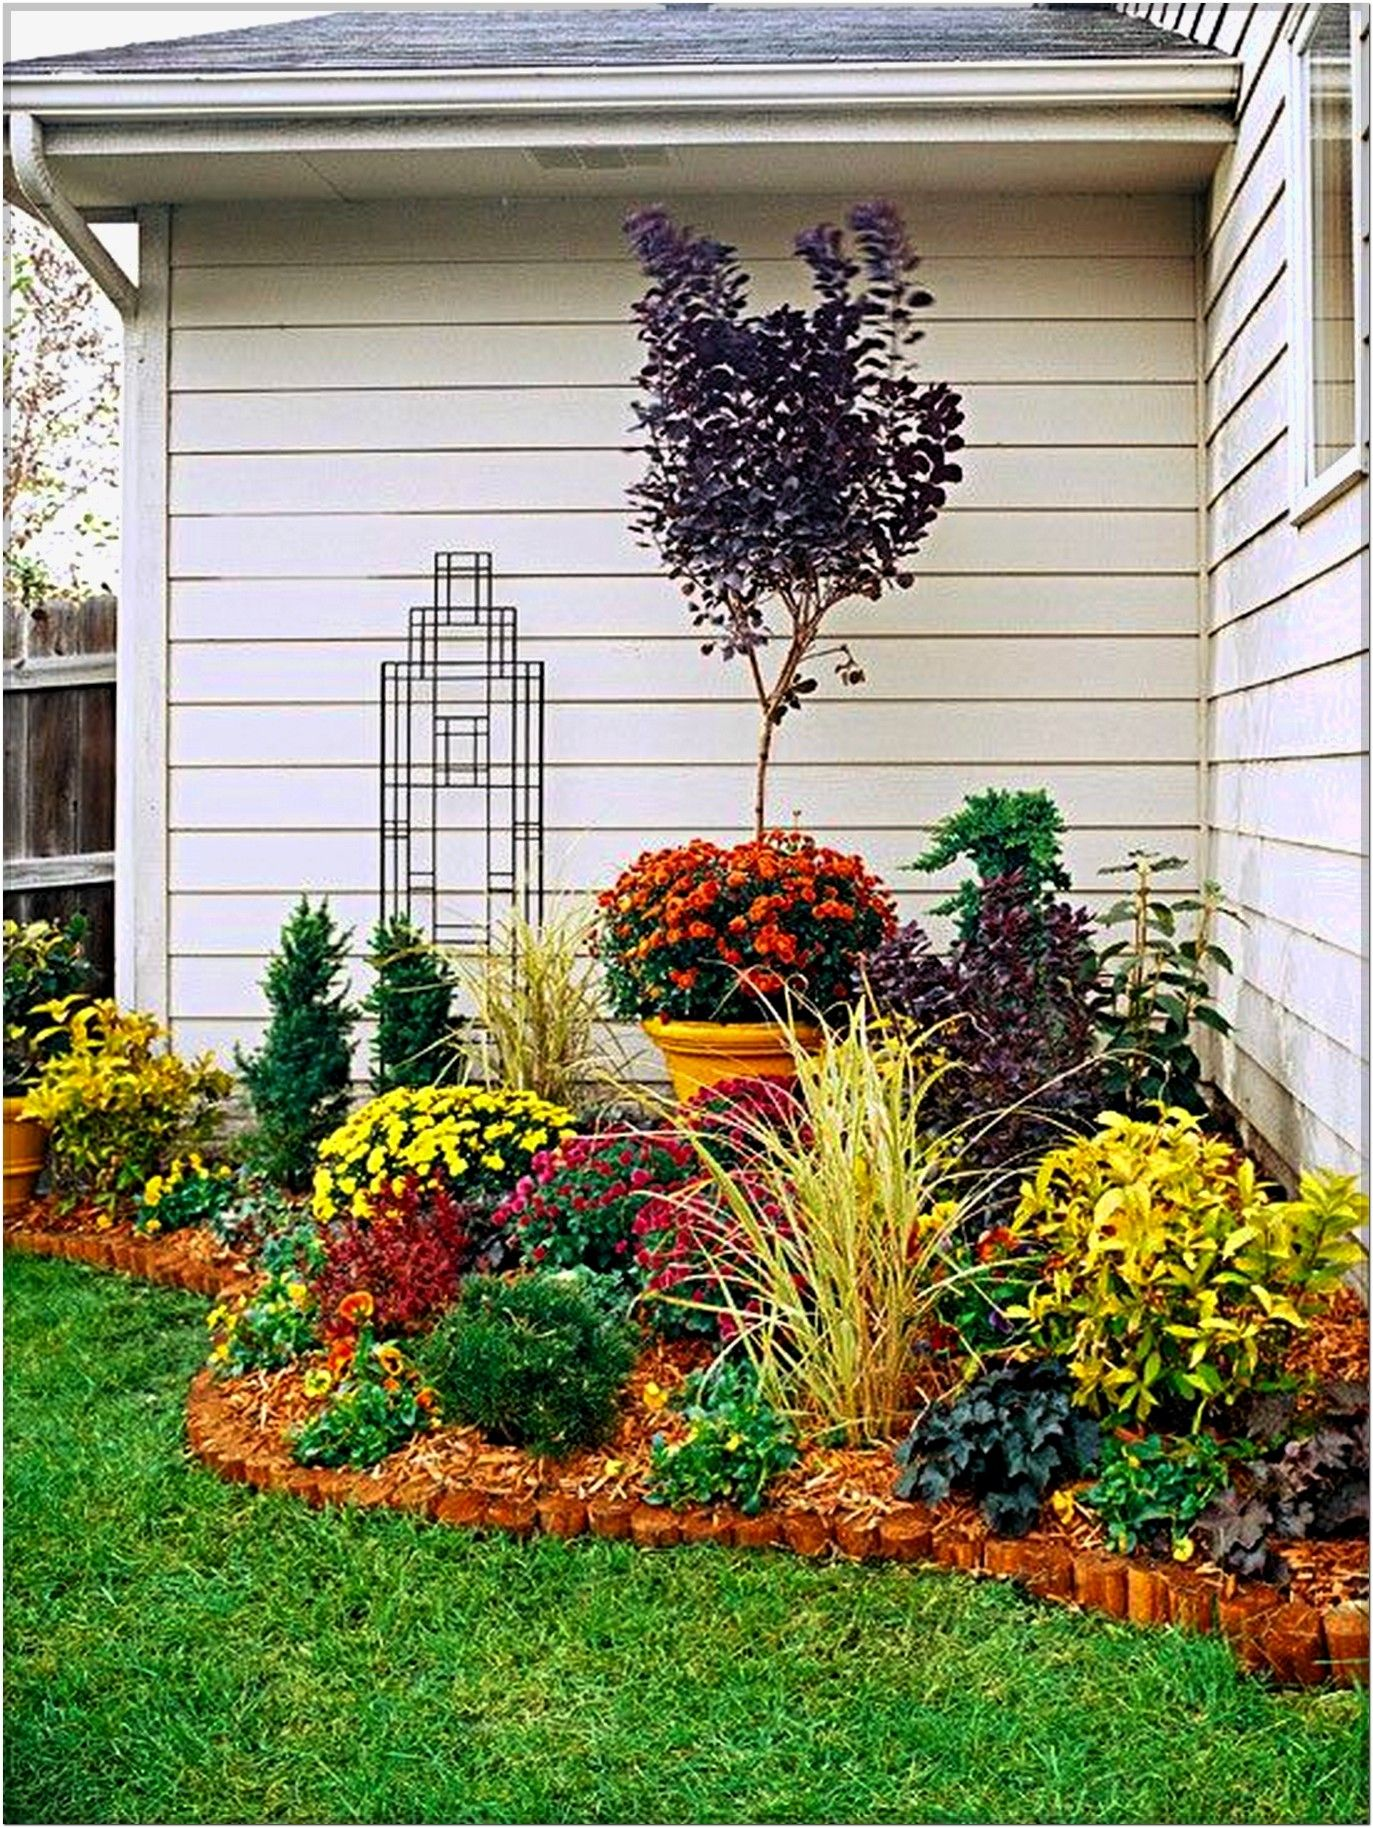 Small Corner Garden Design Diy Do It Yourself On A Budget Garden Design In Alongside Backyard Or Home Best Exterior Home Decorating Small Flower Garden